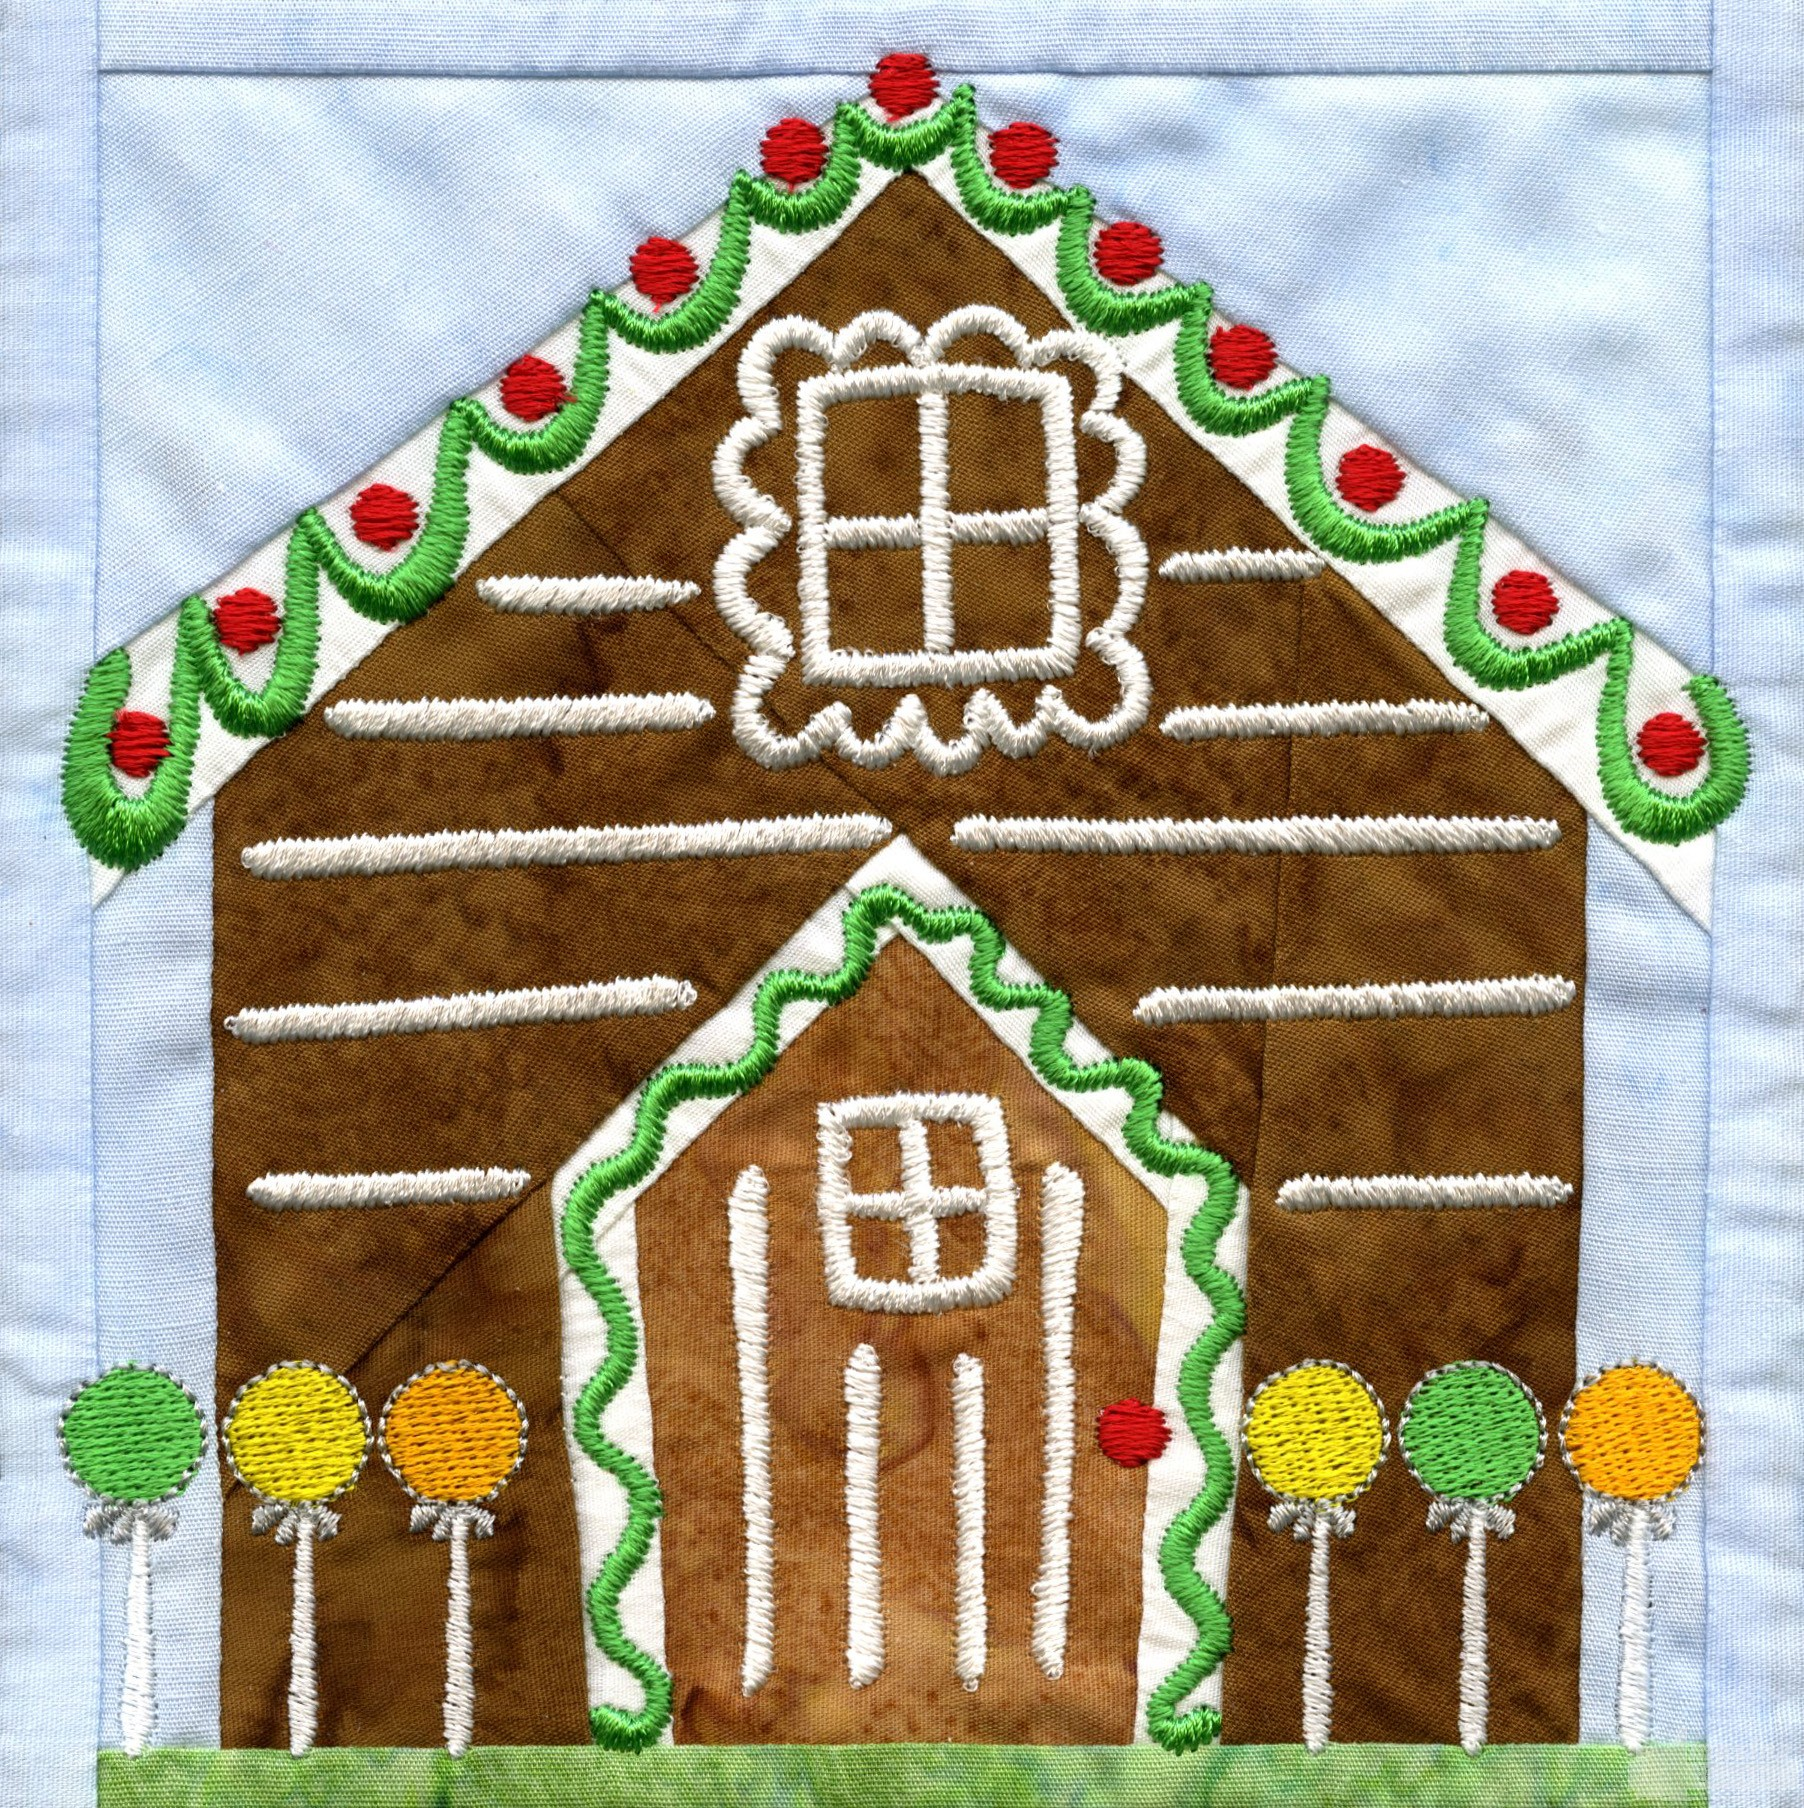 Gingerbread House Quilt Pattern Free : Gingerbread House In-the-hoop Christmas Quilt Block